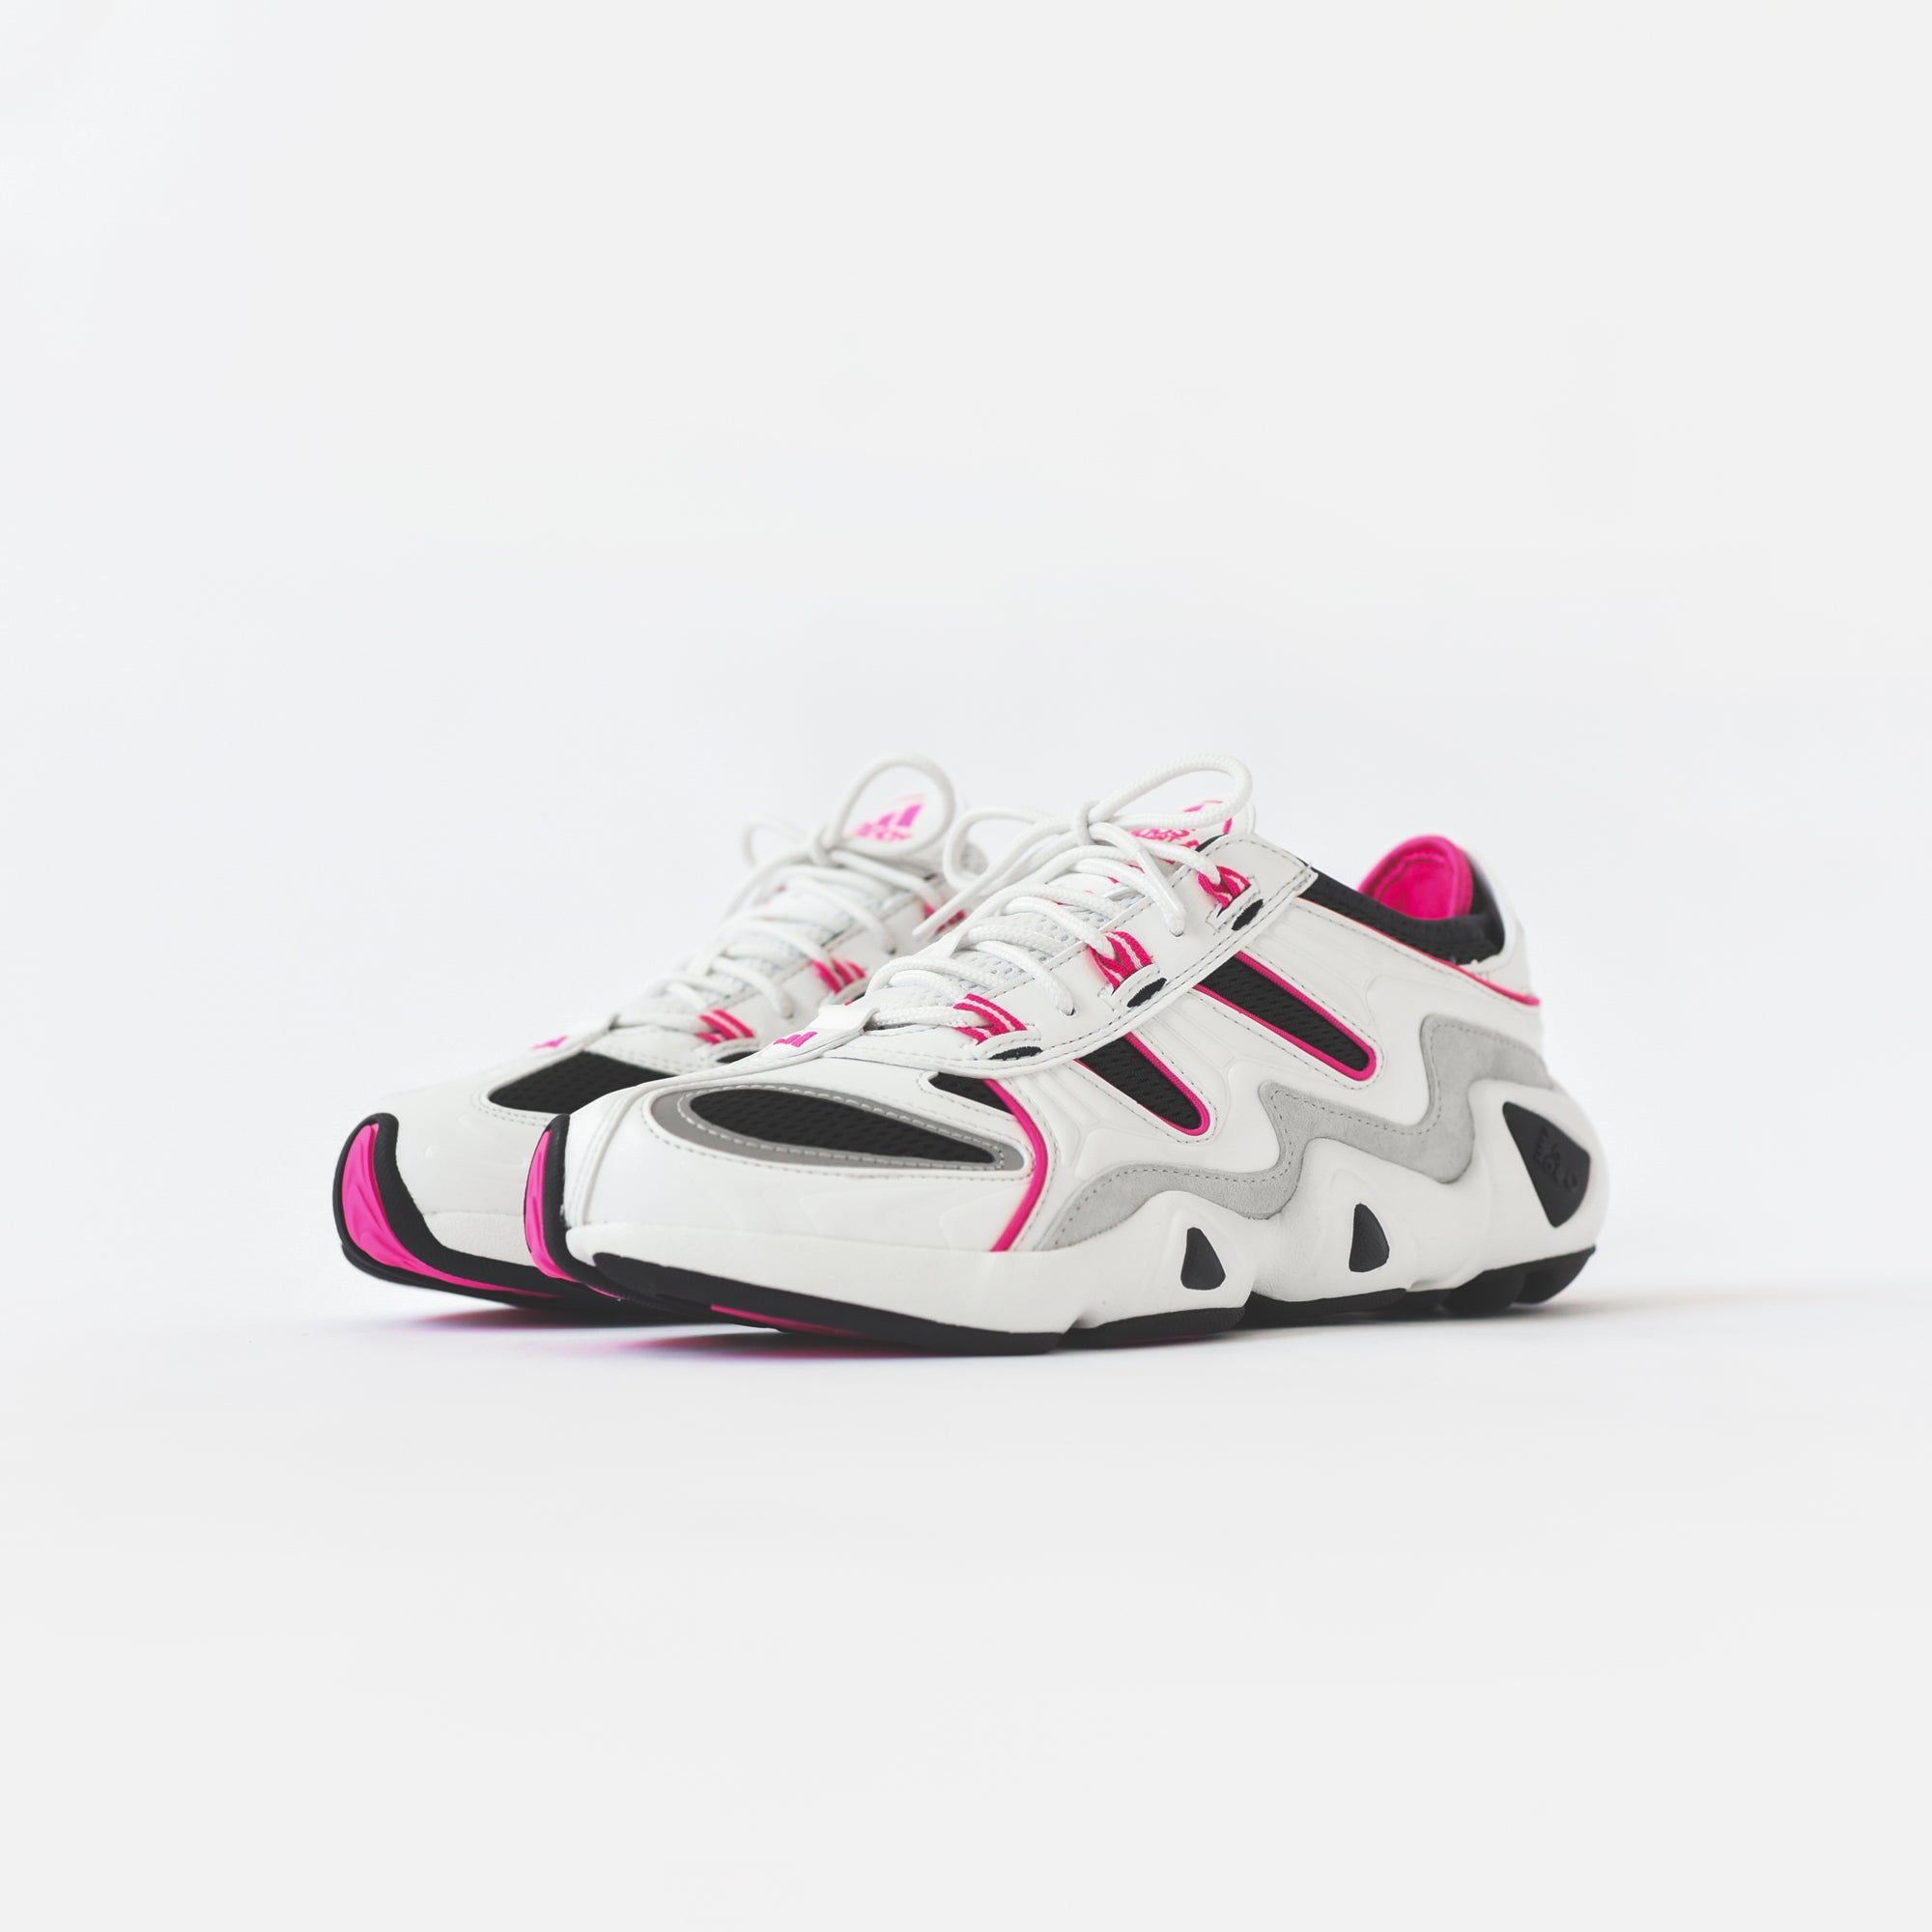 on sale fd6d4 6840e adidas Originals FYW S-97 - White   Shock Red   Core Black. April 17, 2019.  Shop Now. -3. -1. -2